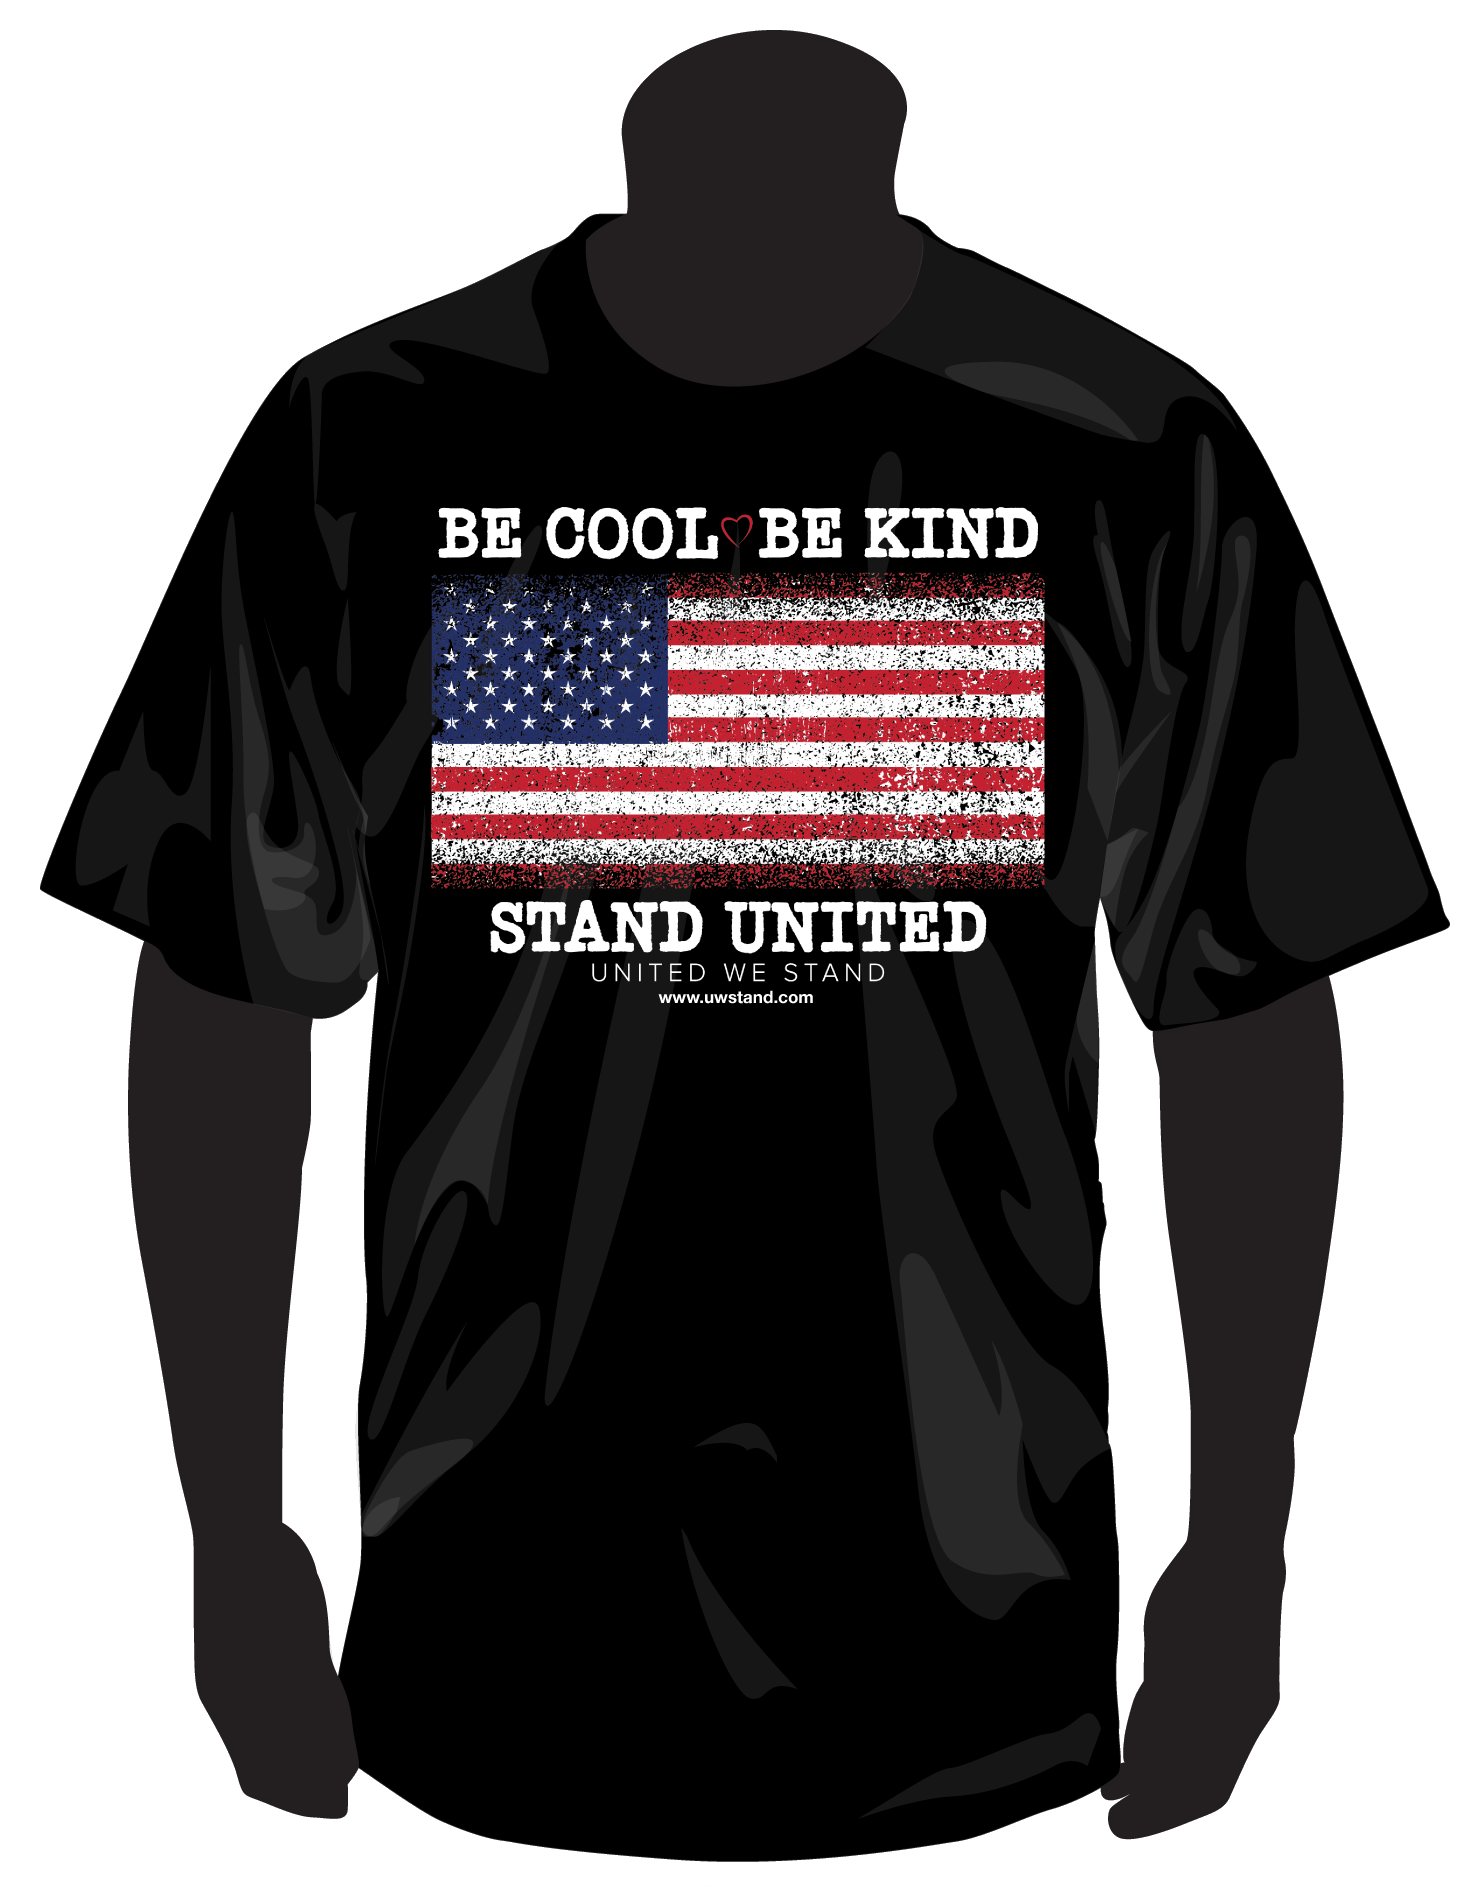 Be Cool. Be Kind. Stand United.